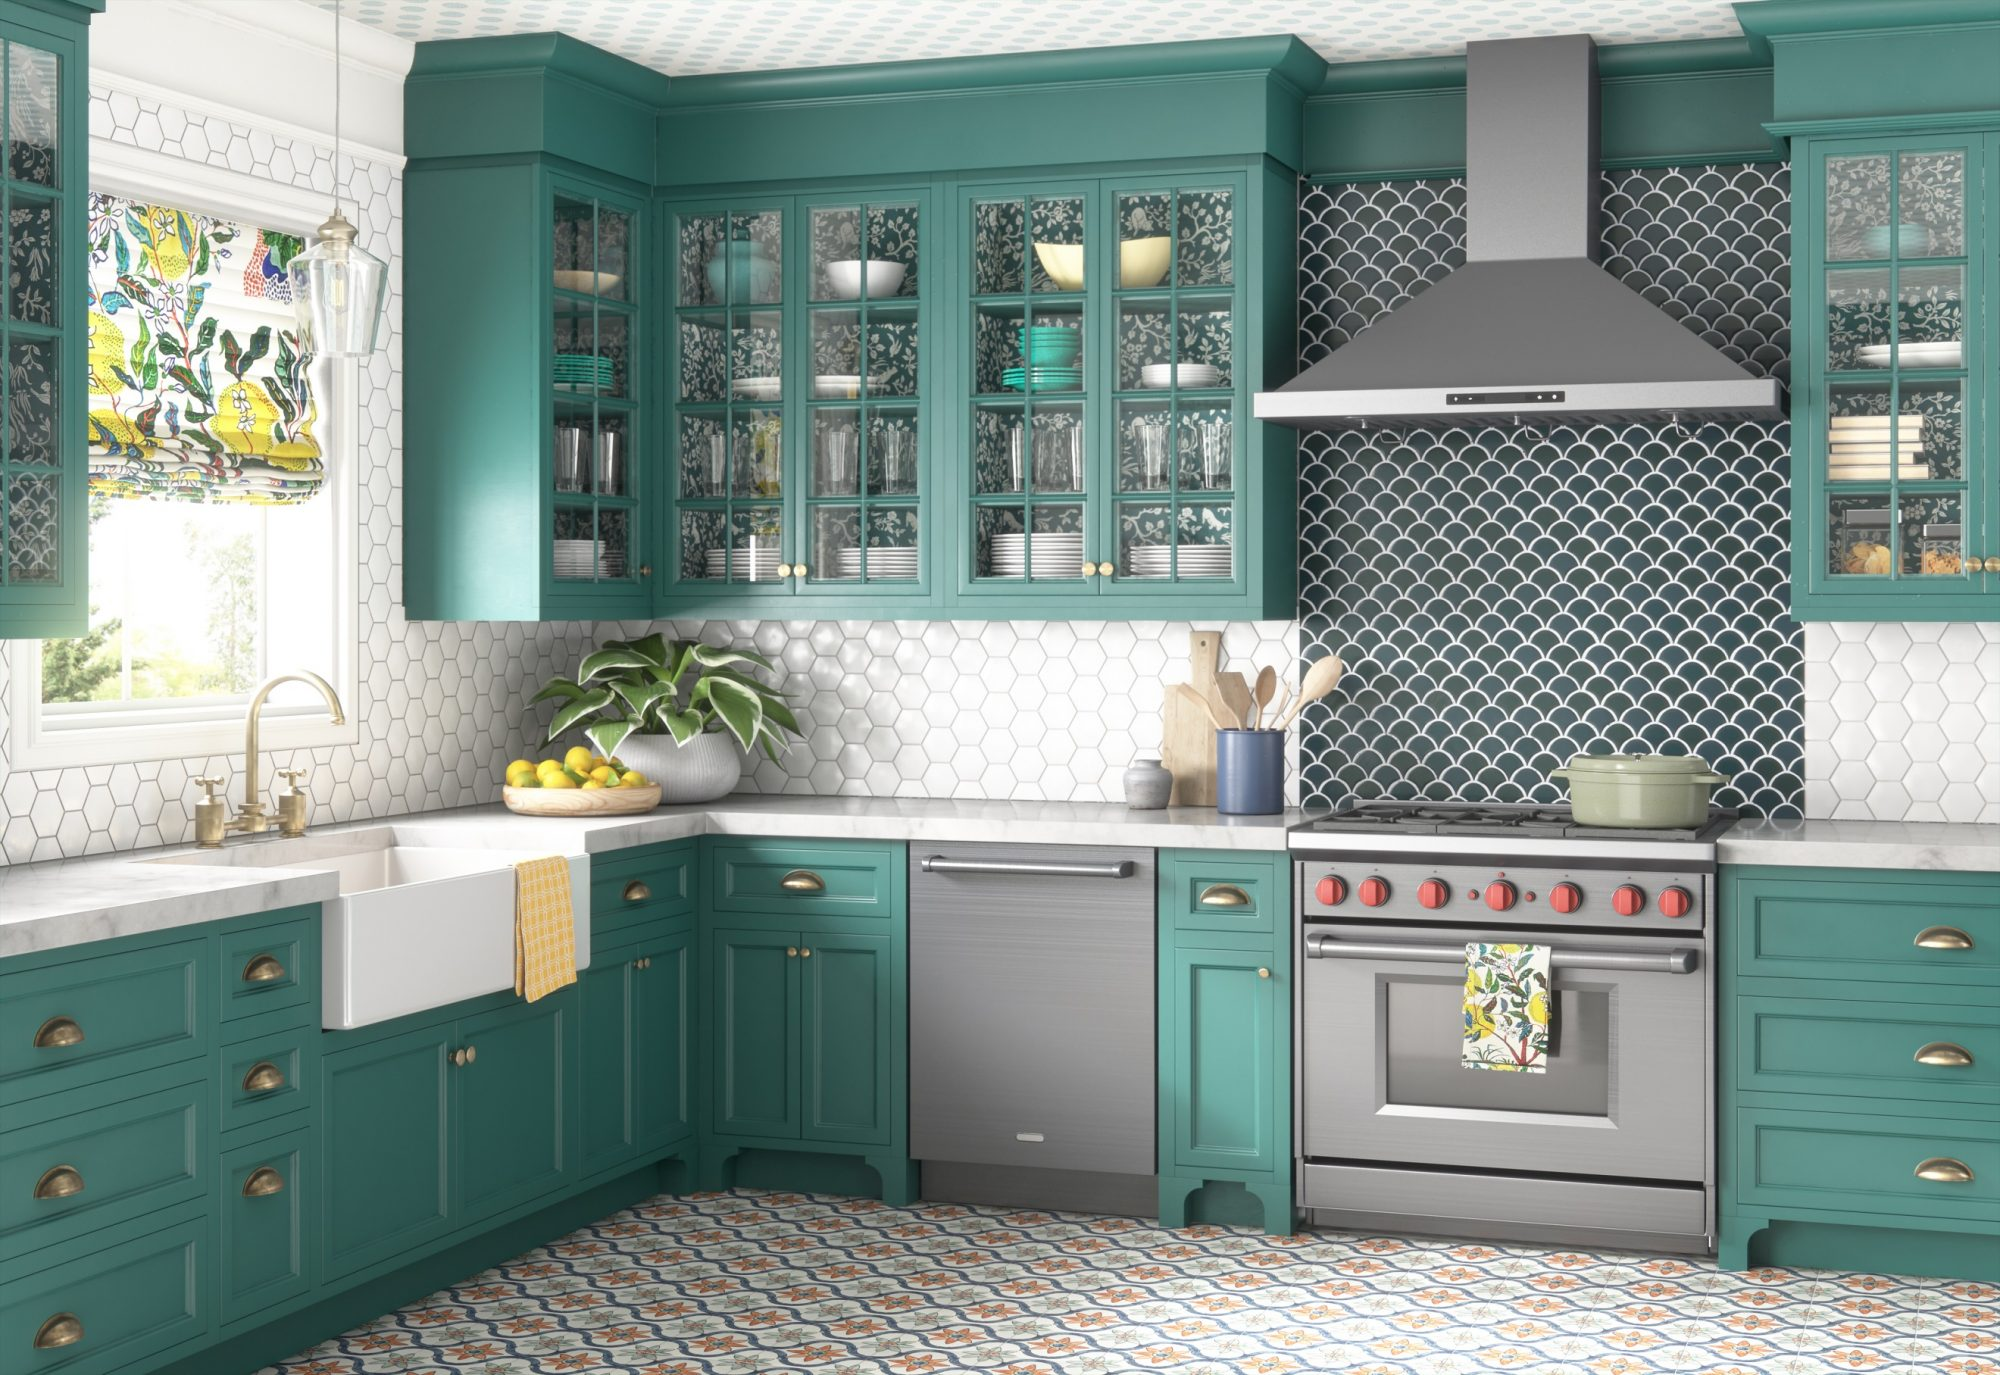 9 Paint Color Trends We're Loving for Kitchen Cabinets in 9 ...